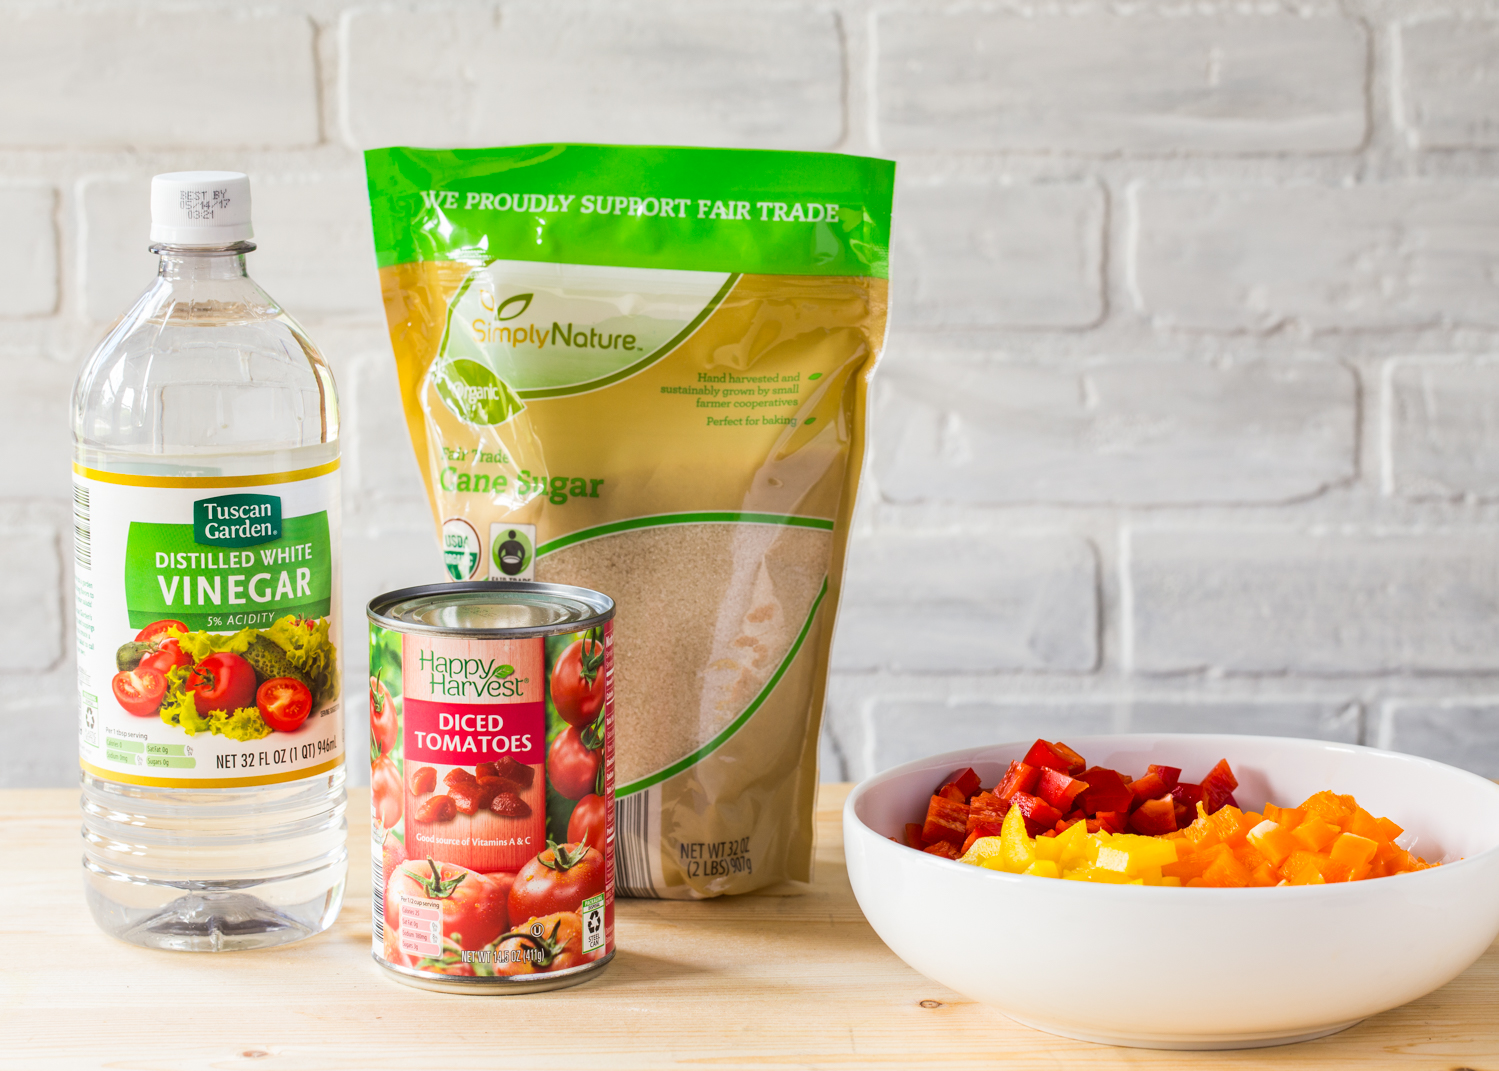 Ingredients from ALDI for Homemade Hot Dog Toppings